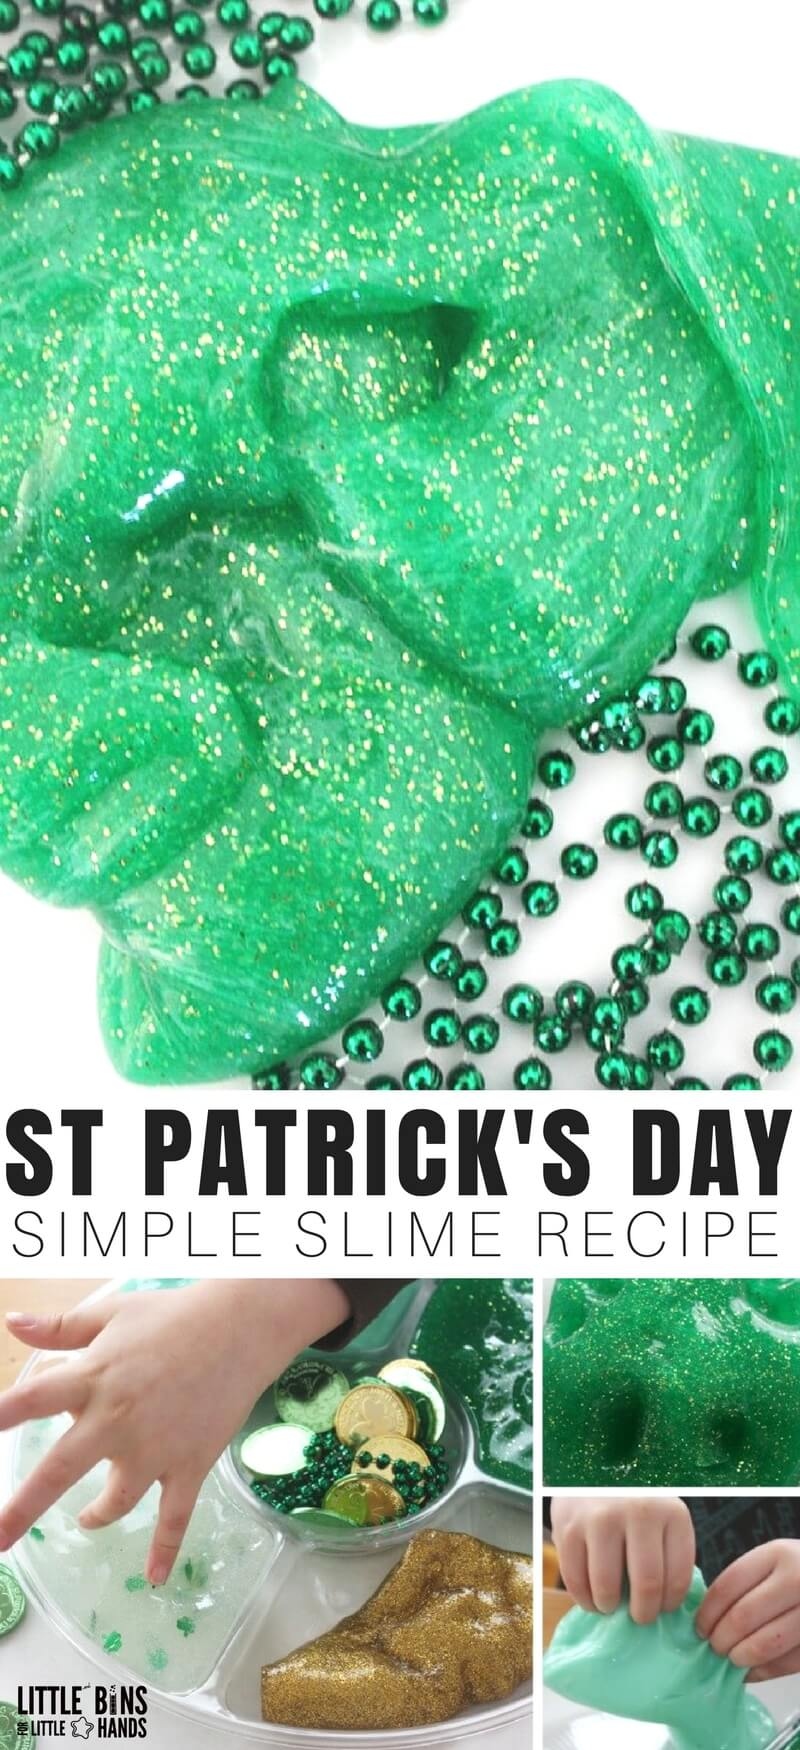 St patricks day slime slime recipe and science activity for kids ive read that everyones irish on st patricks day so we show ccuart Choice Image